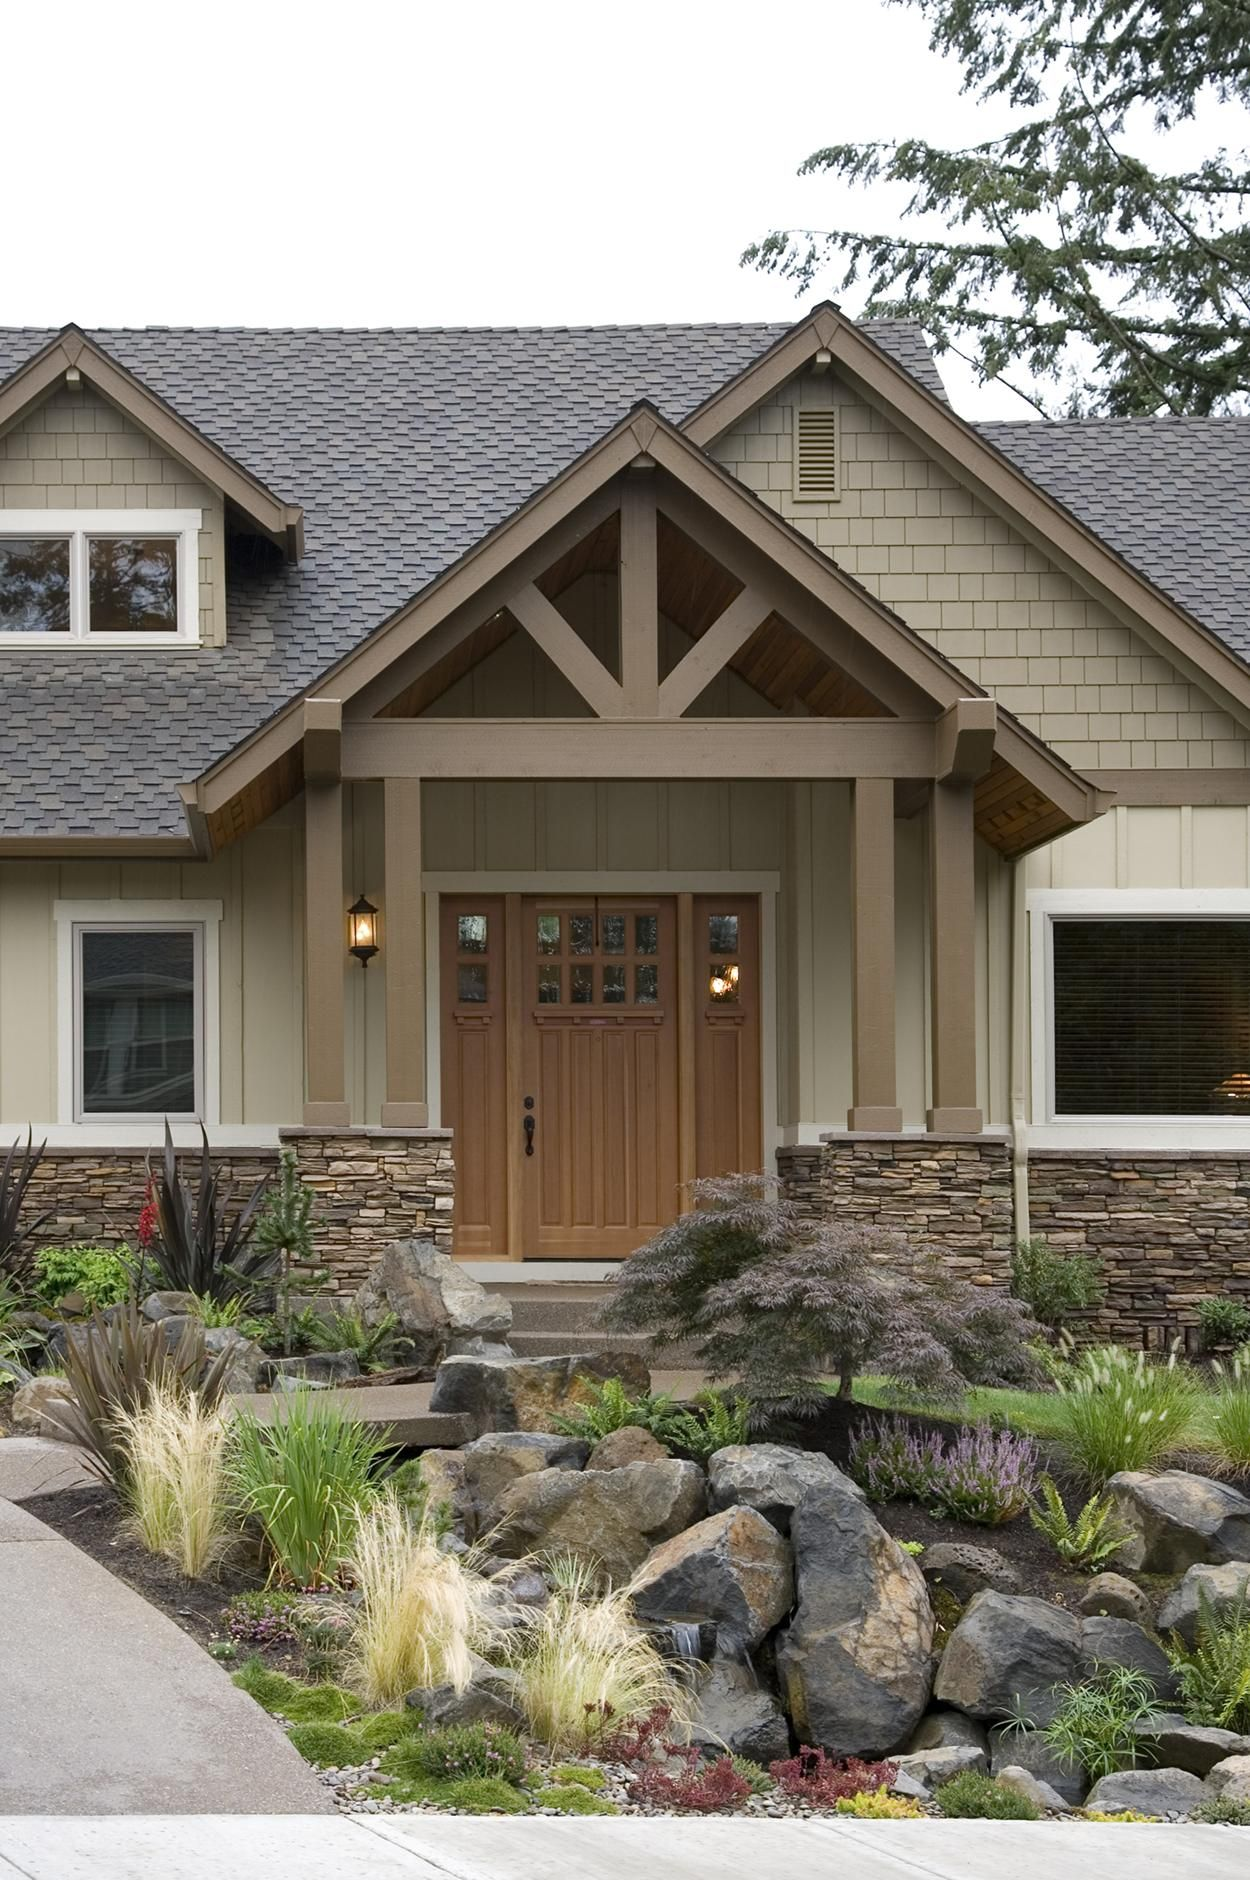 Rugged Craftsman Ranch Home Plan with Angled Garage